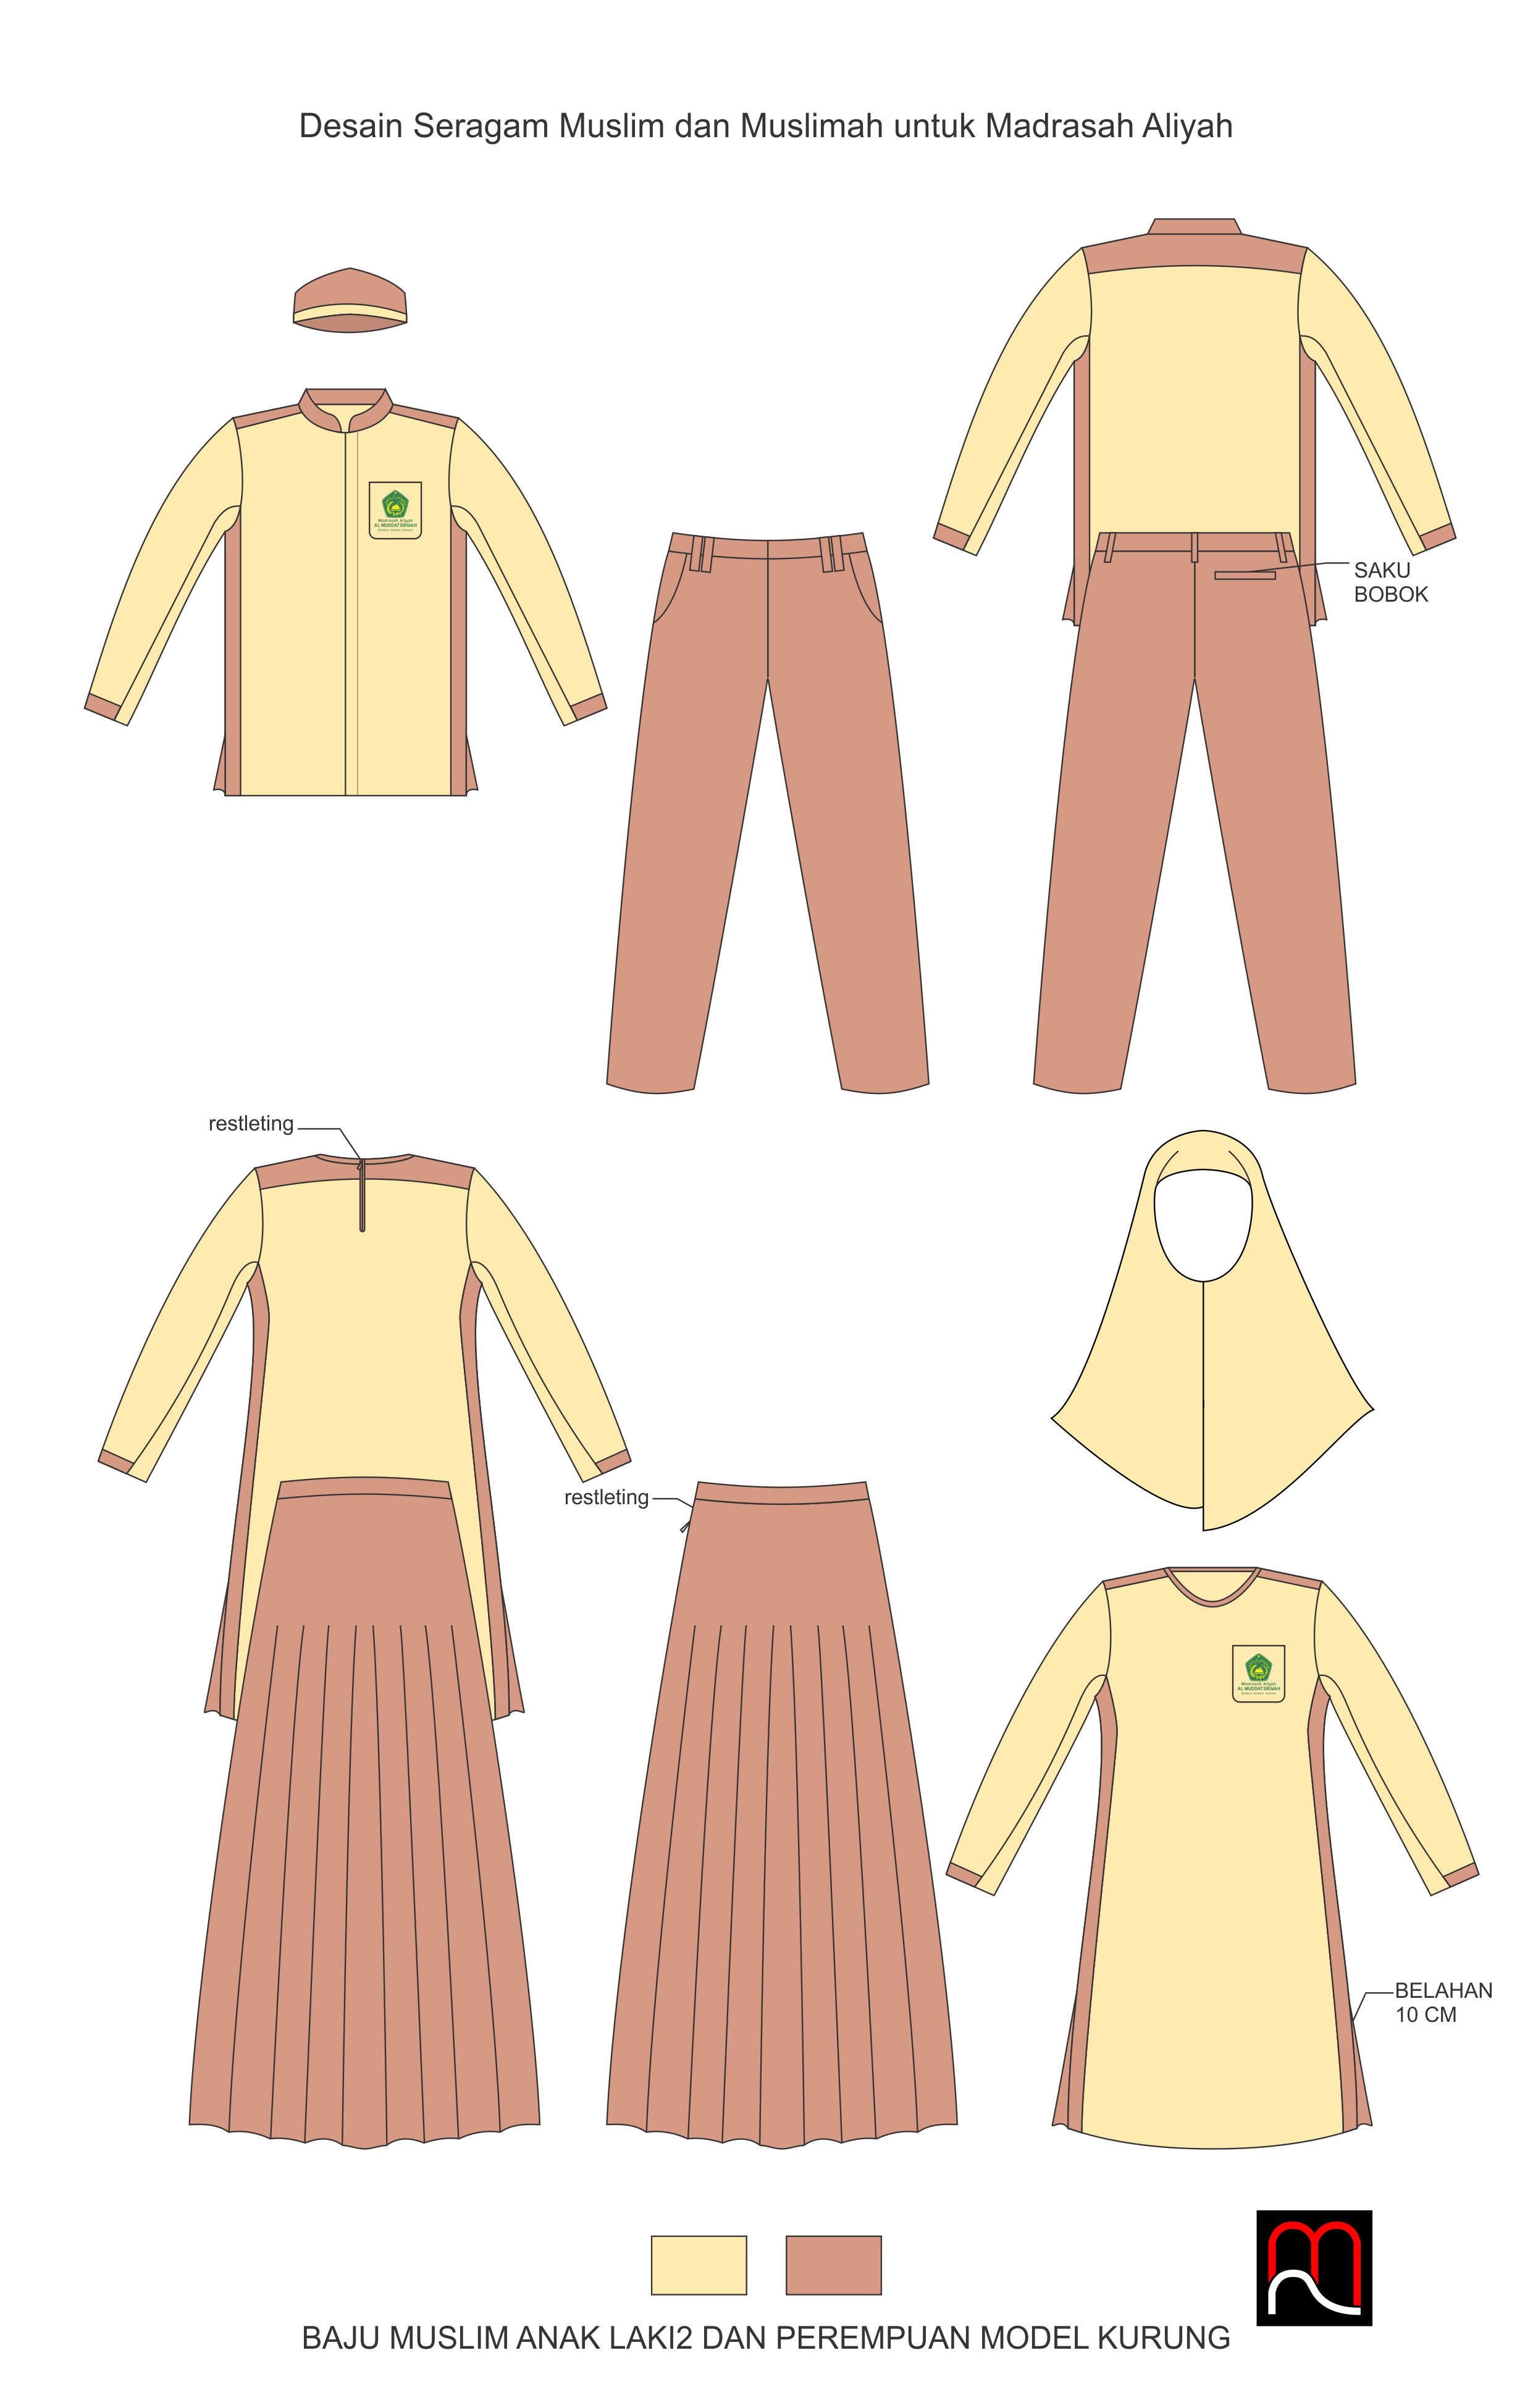 Sribu: Office Uniform/Clothing Design - Desain Seragam Musli